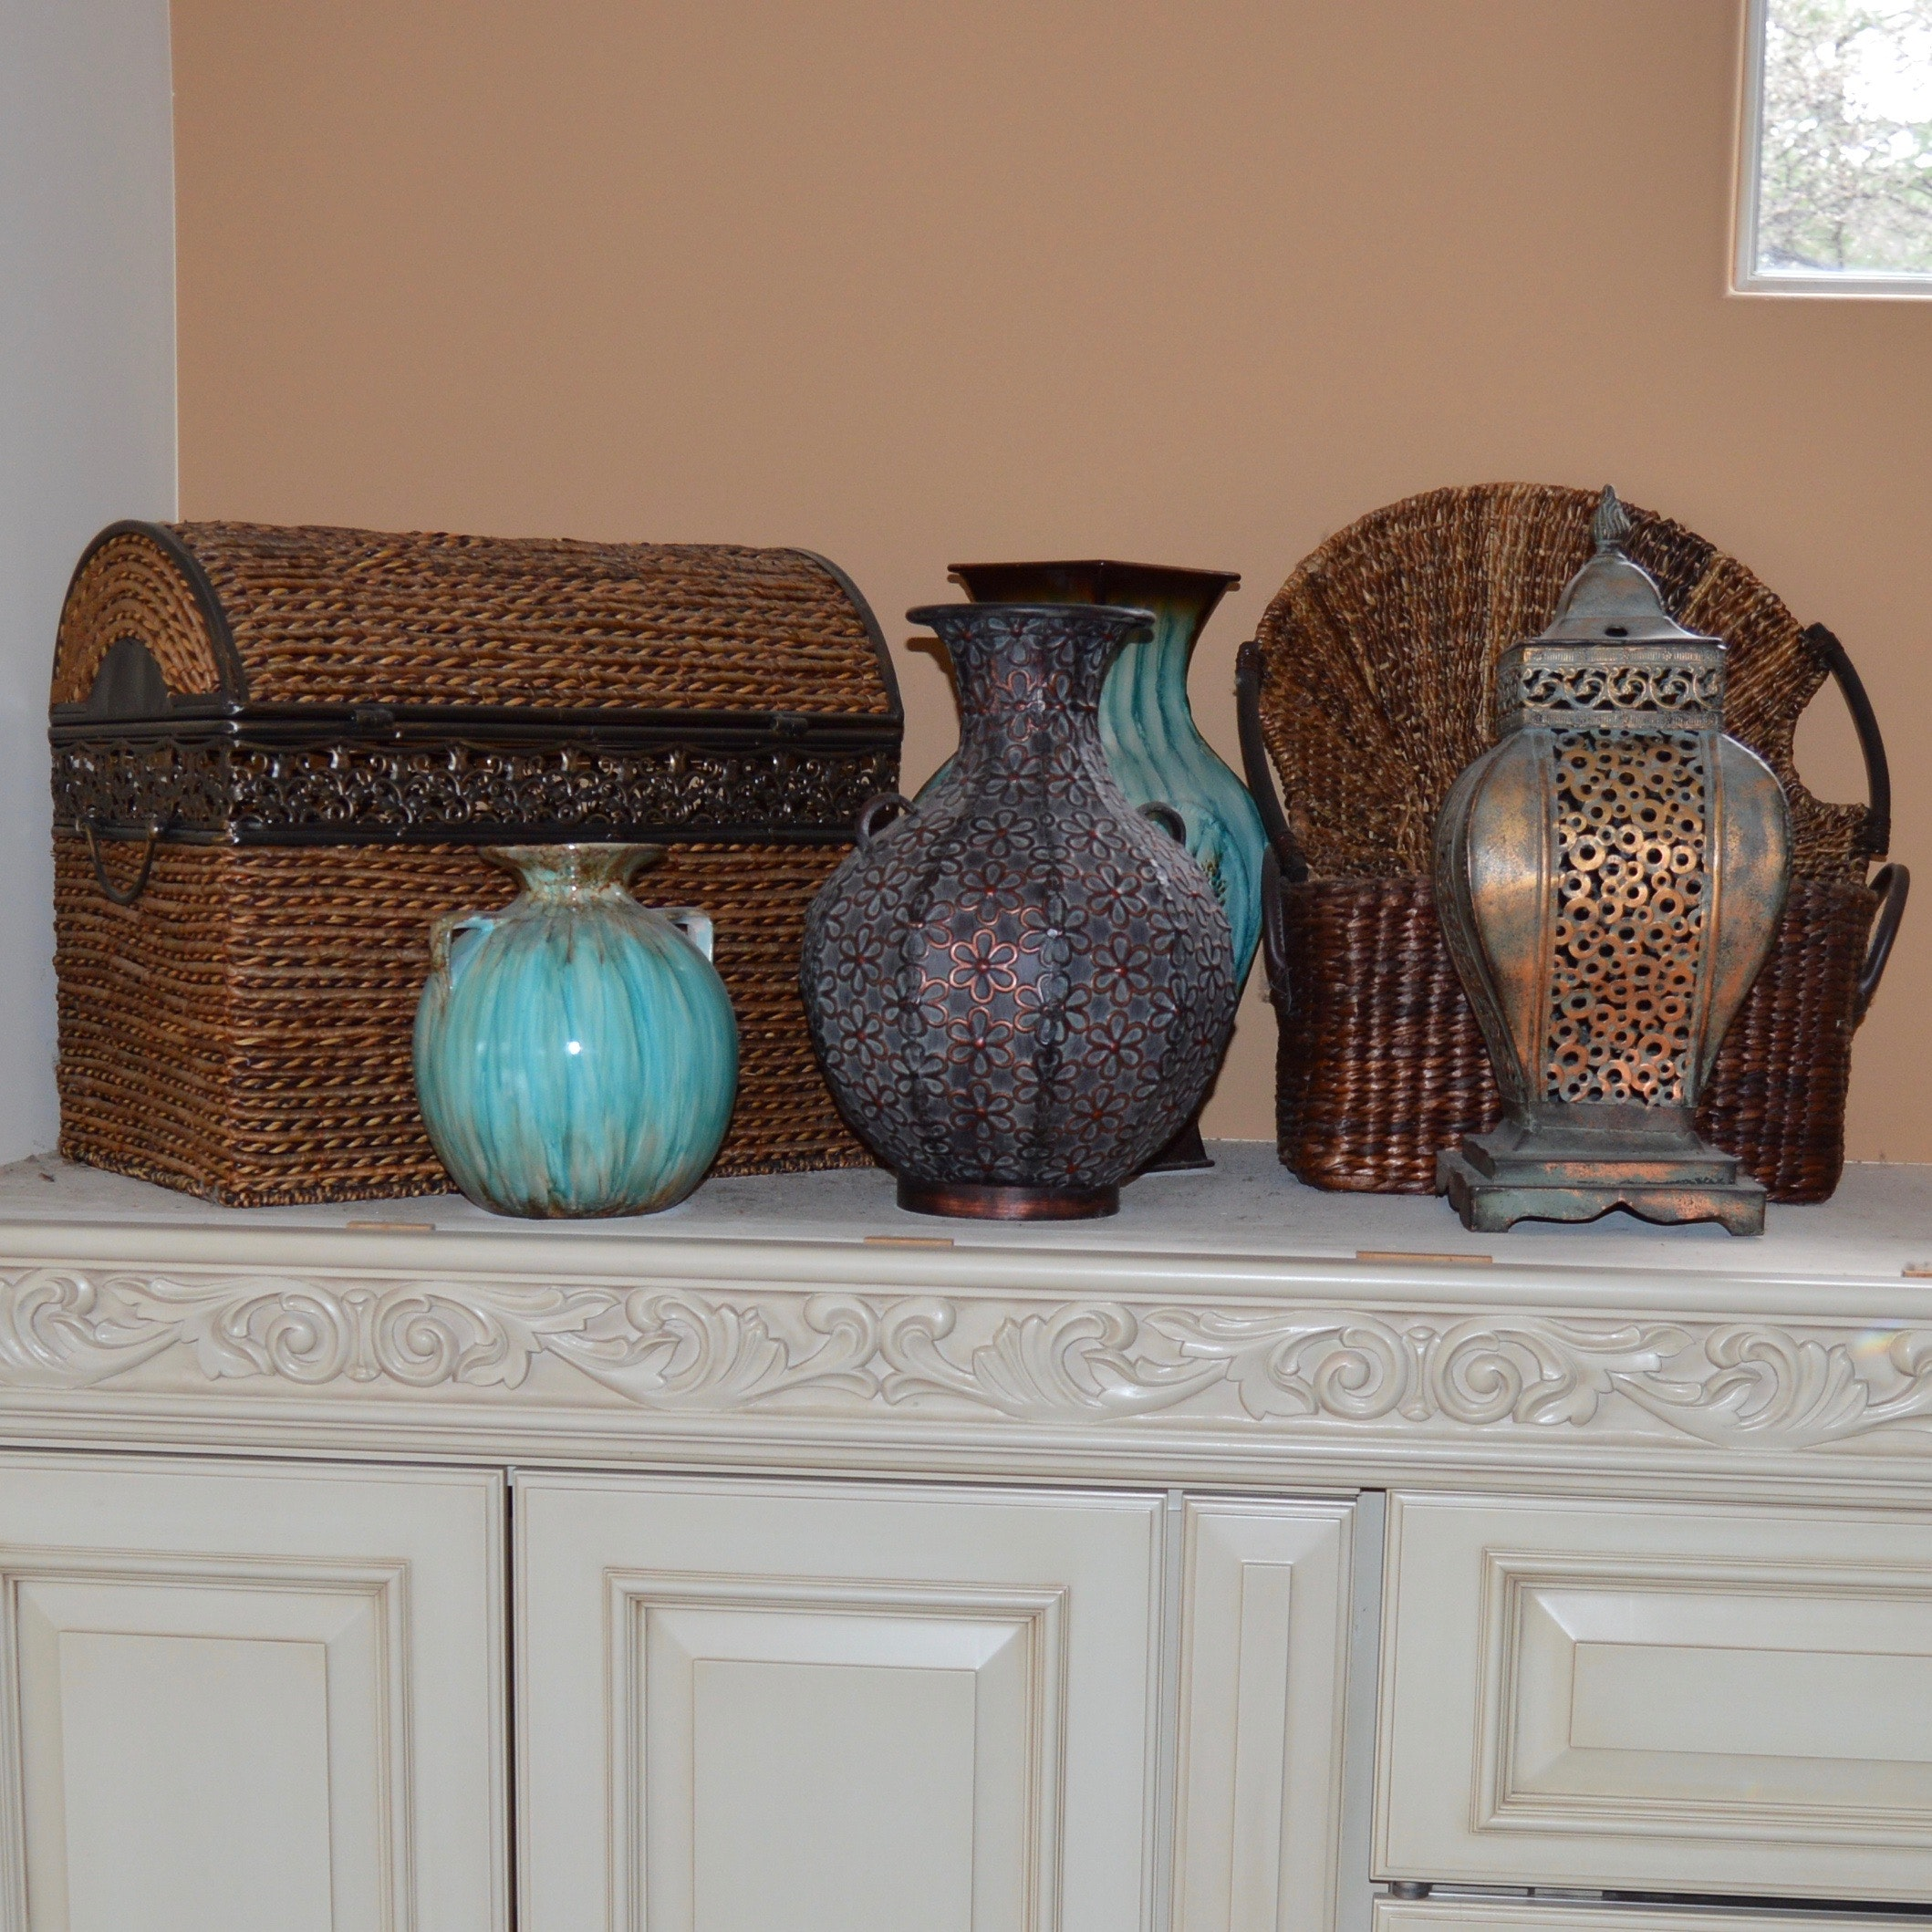 Baskets and Vases Decor Grouping